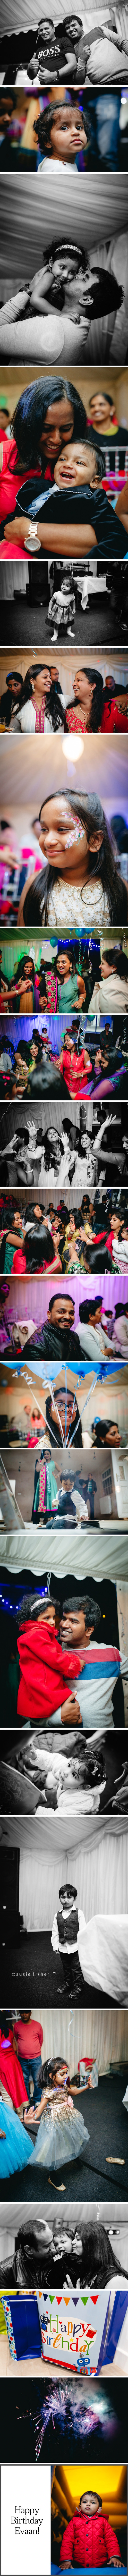 Sindhu Kathikeyan Birthday Party Photographer_Copyright Susie Fisher Photography